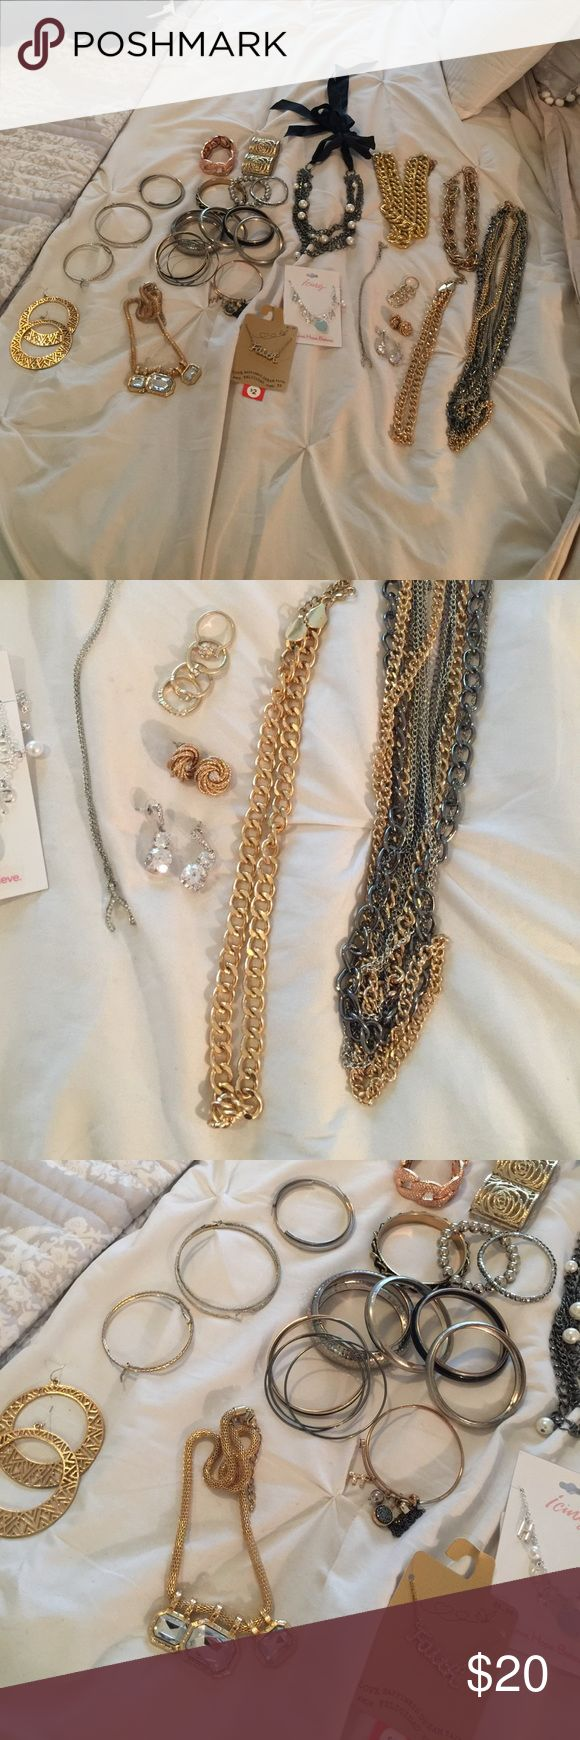 Large lot costume jewelry necklace bracelet etc Lot as pictured, most is from Charlotte Russe/forever 21 type stores most has been worn. Some tarnishing some look new Jewelry